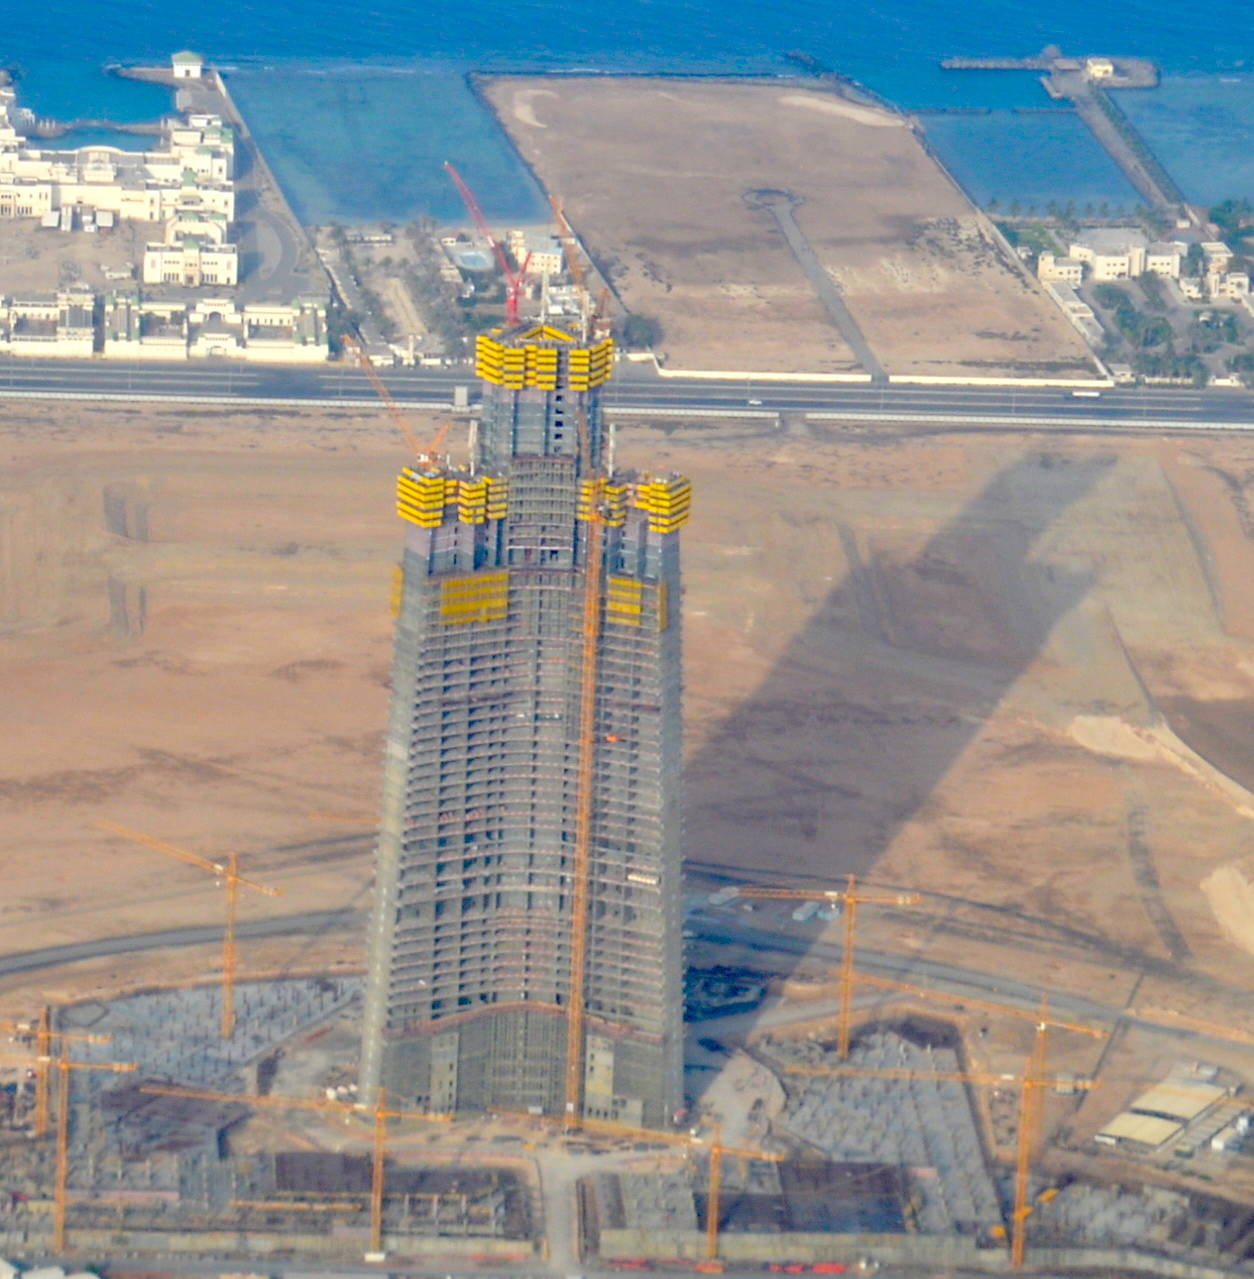 Jeddah Tower - Wikipedia